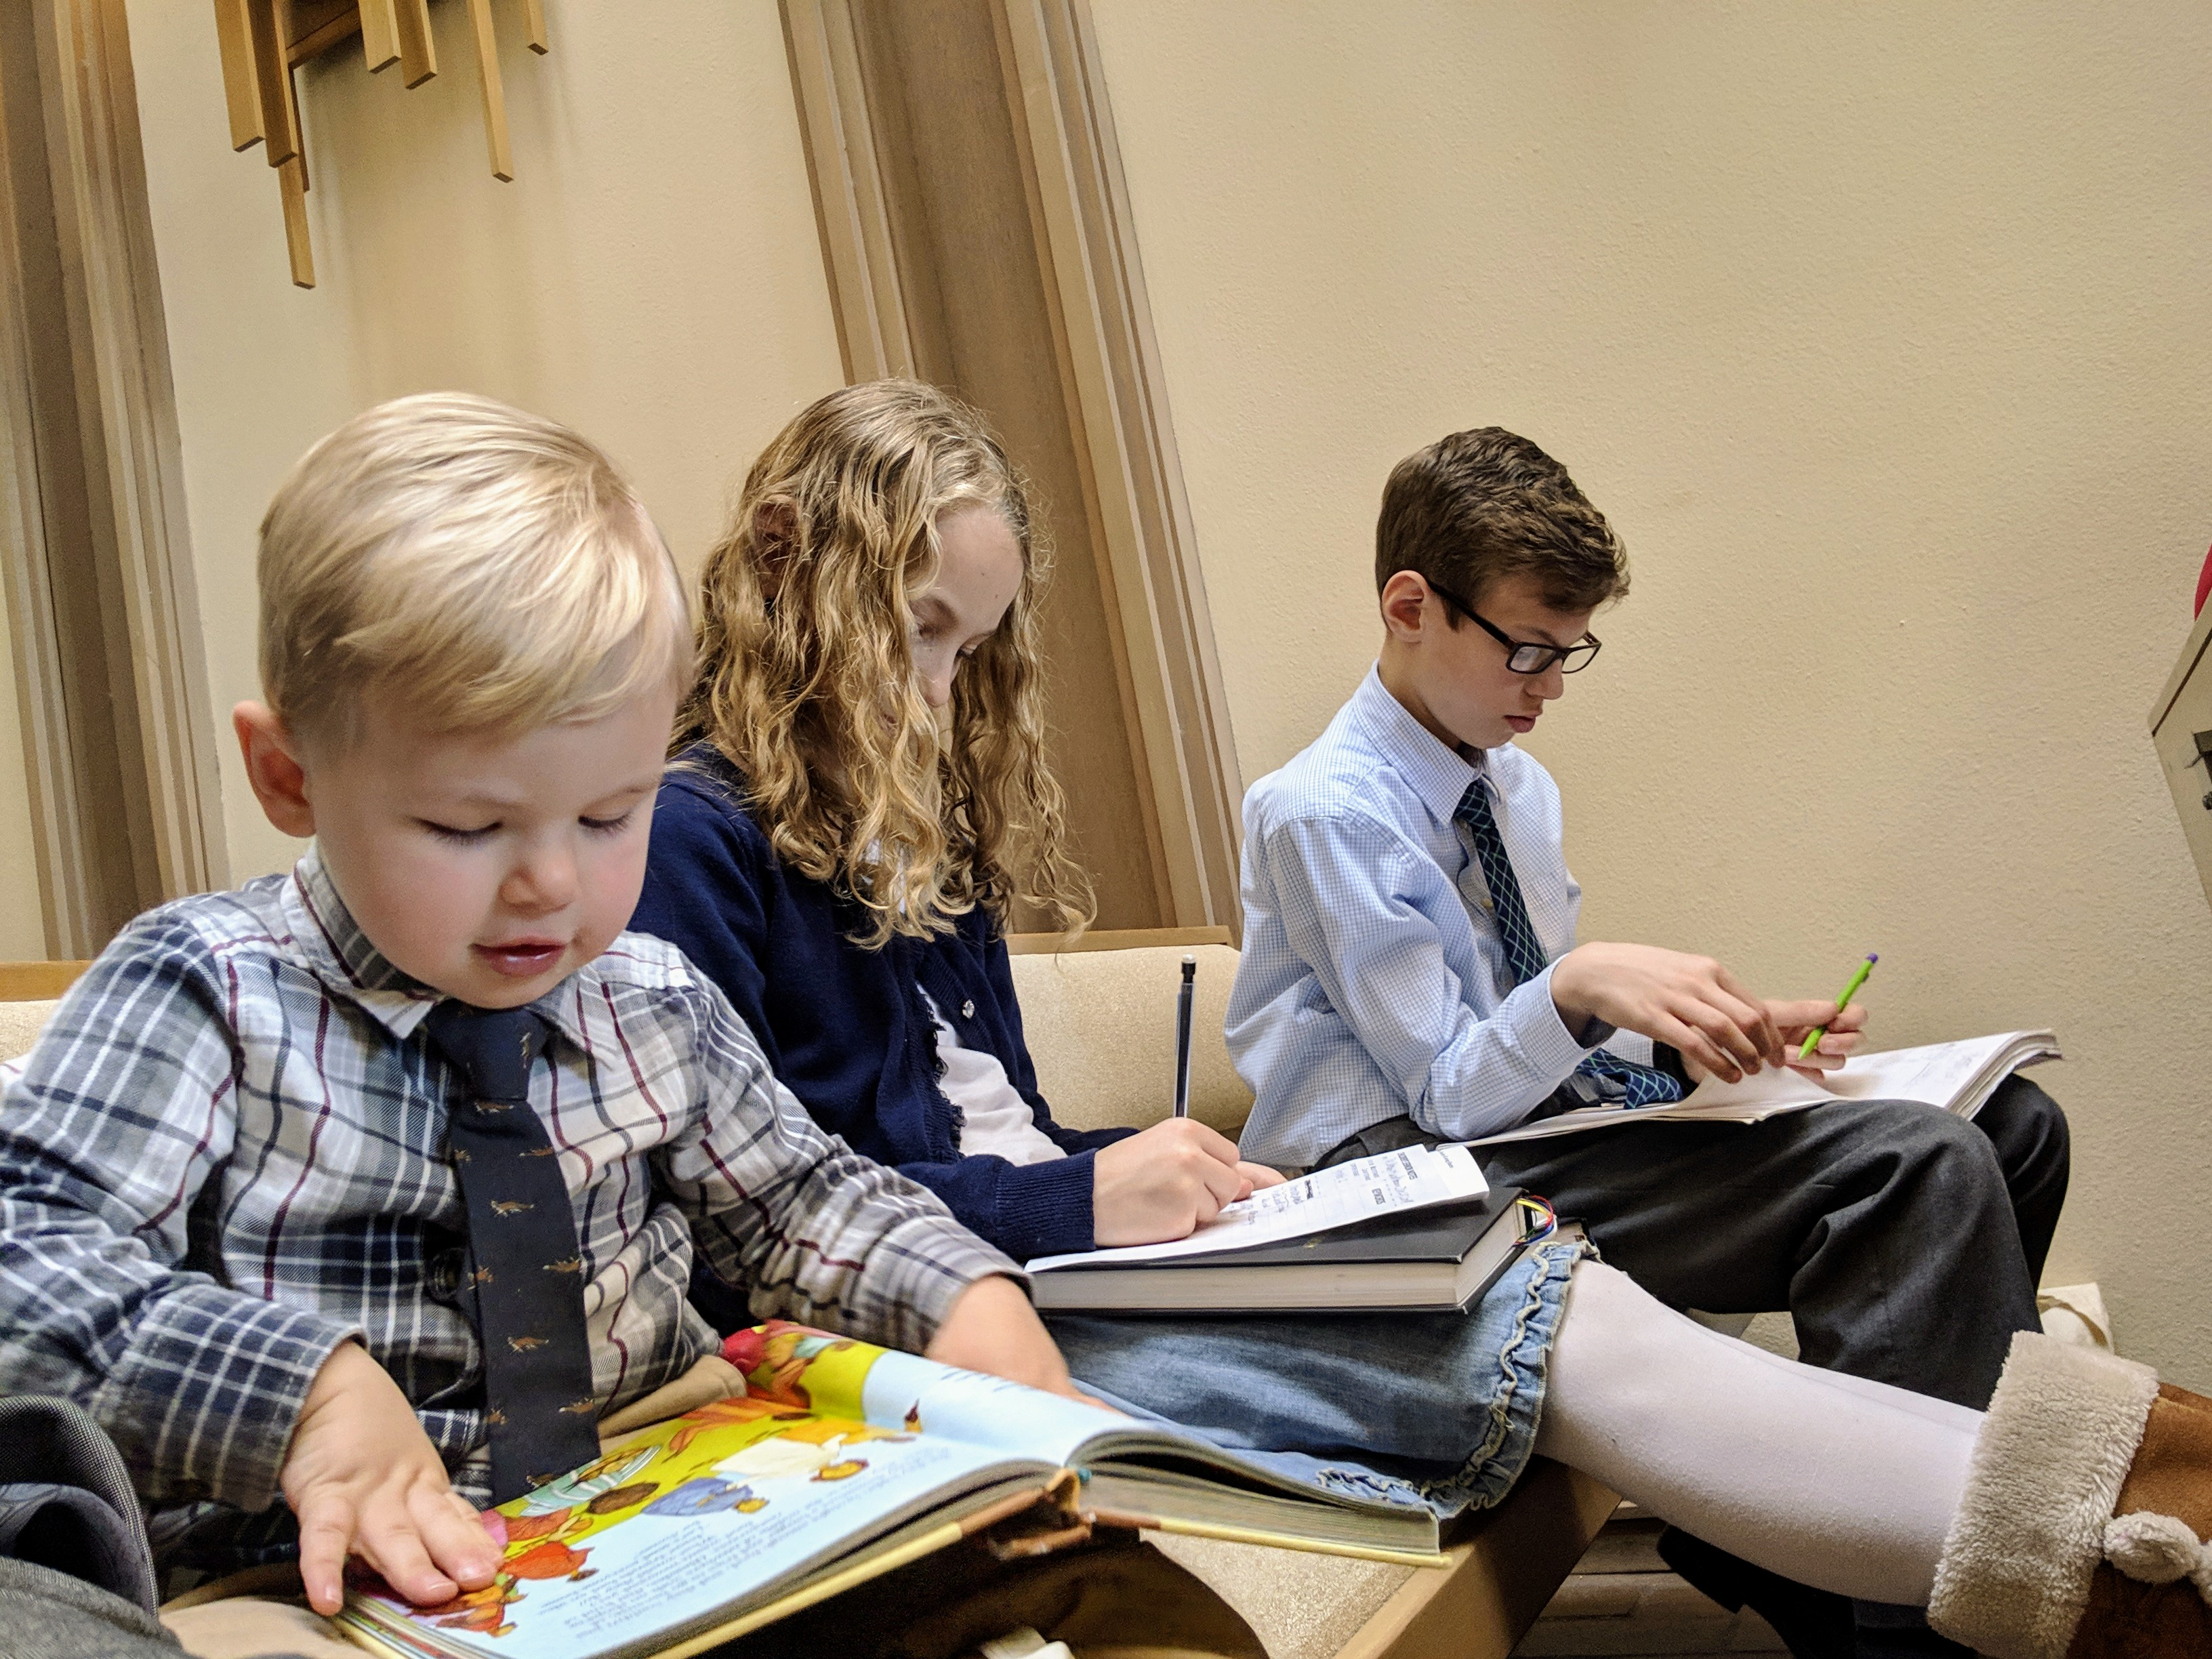 Why We Let the Little Ones Come to the Service